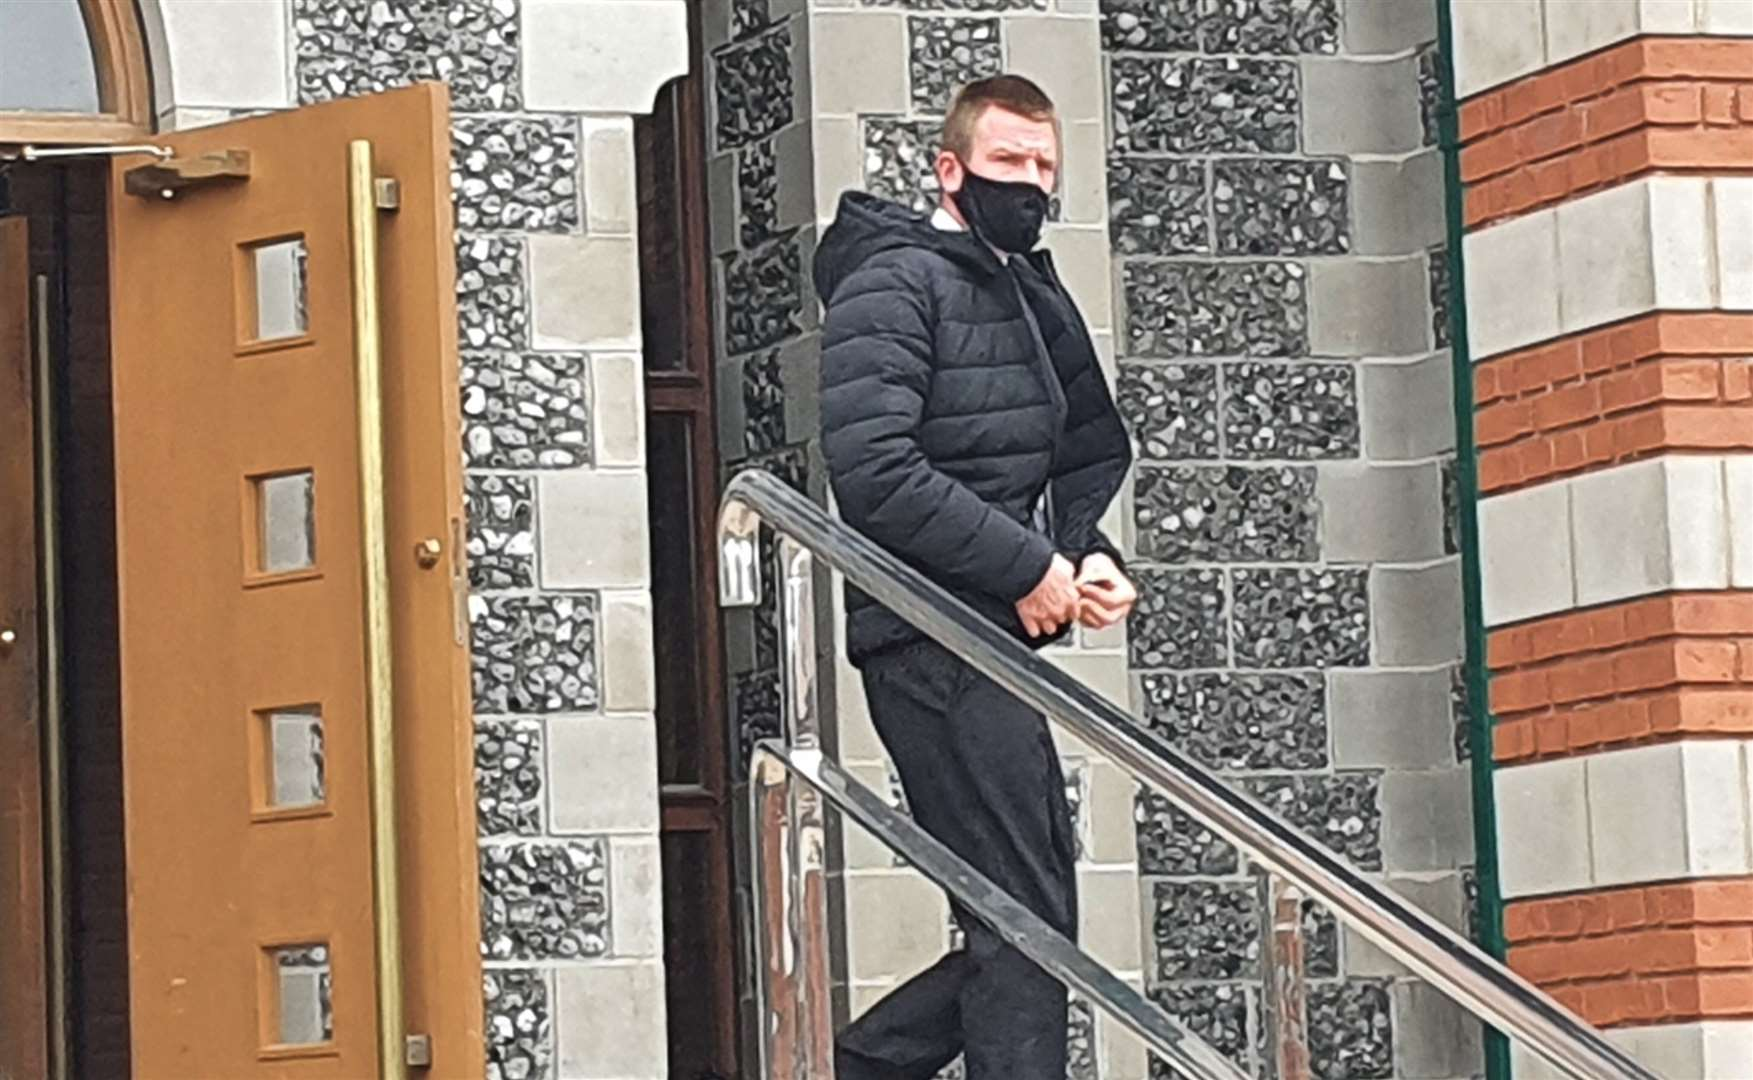 Macaulay Skirrow, 24, of Freemens Way, Deal, pleaded guilty at Canterbury Crown Court to causing the death of motorcyclist Bernard Tomlin